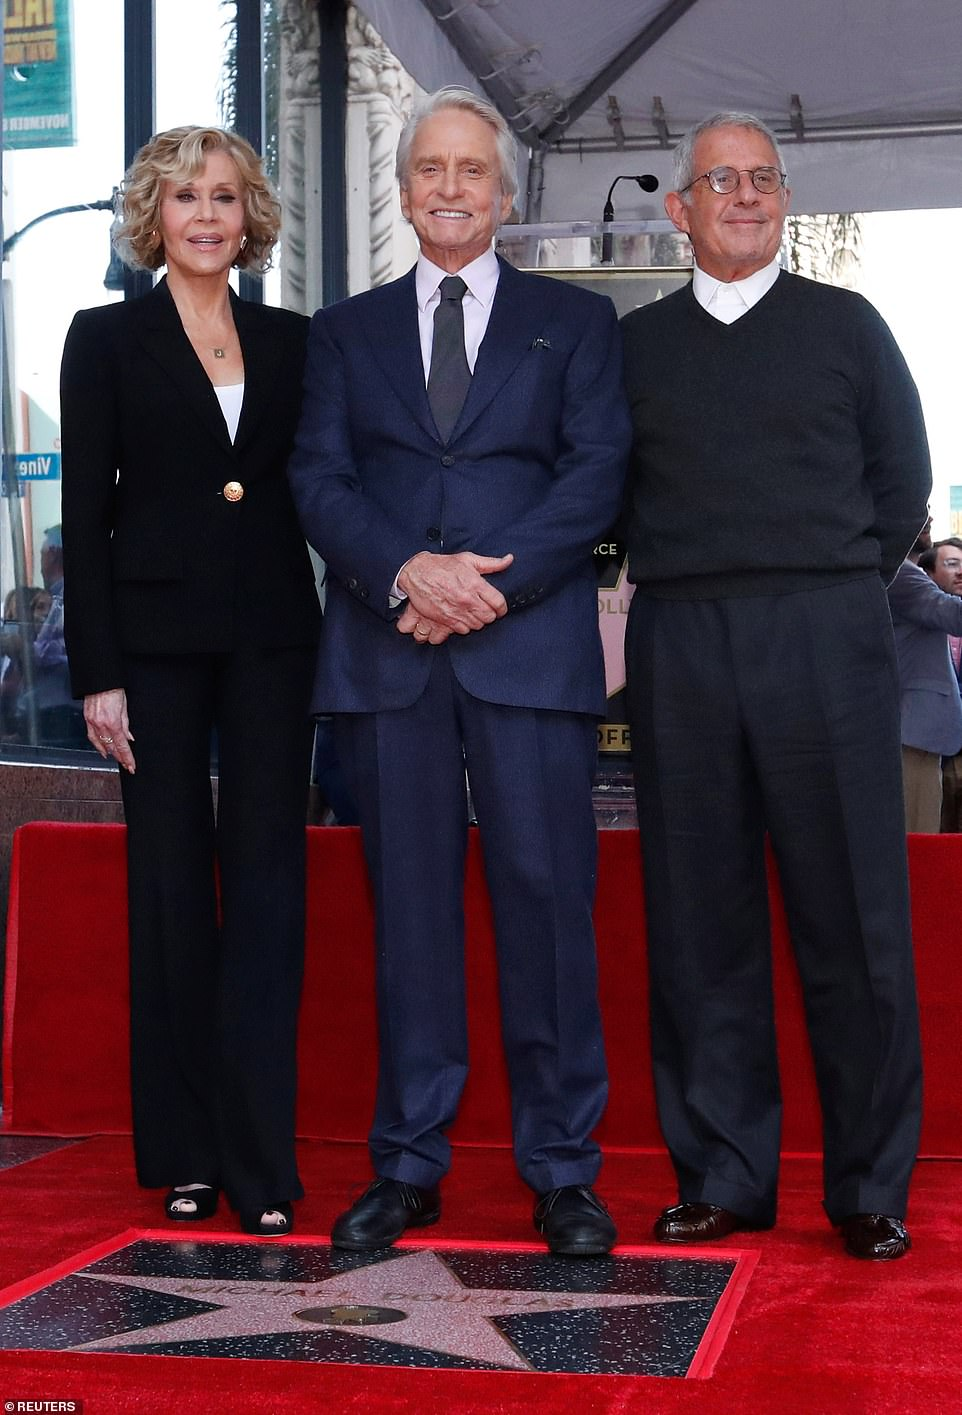 In good company: Michael was also supported by long-time friend and The China Syndrome co-star Jane Fonda, 80, and his former agent Ron Meyer, now the Vice Chairman of NBC Universal